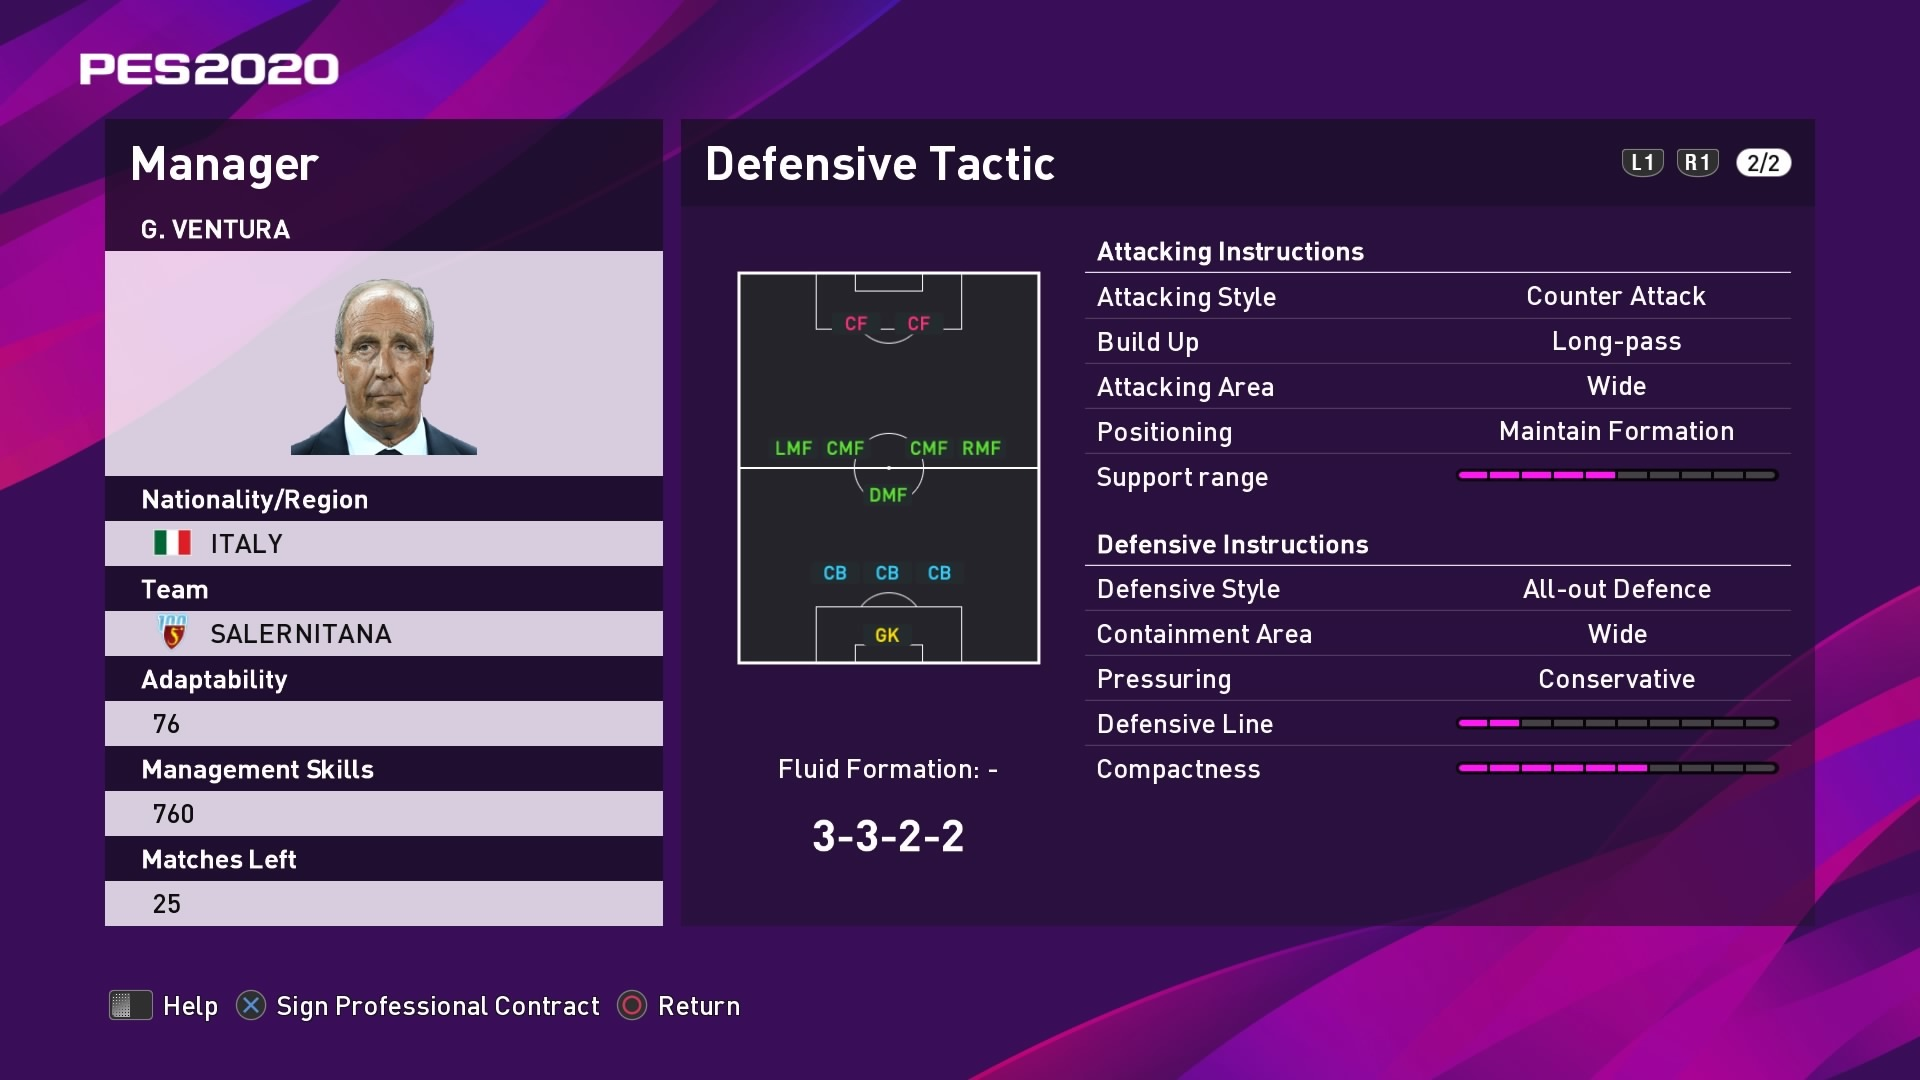 G. Ventura (Gian Piero Ventura) Defensive Tactic in PES 2020 myClub